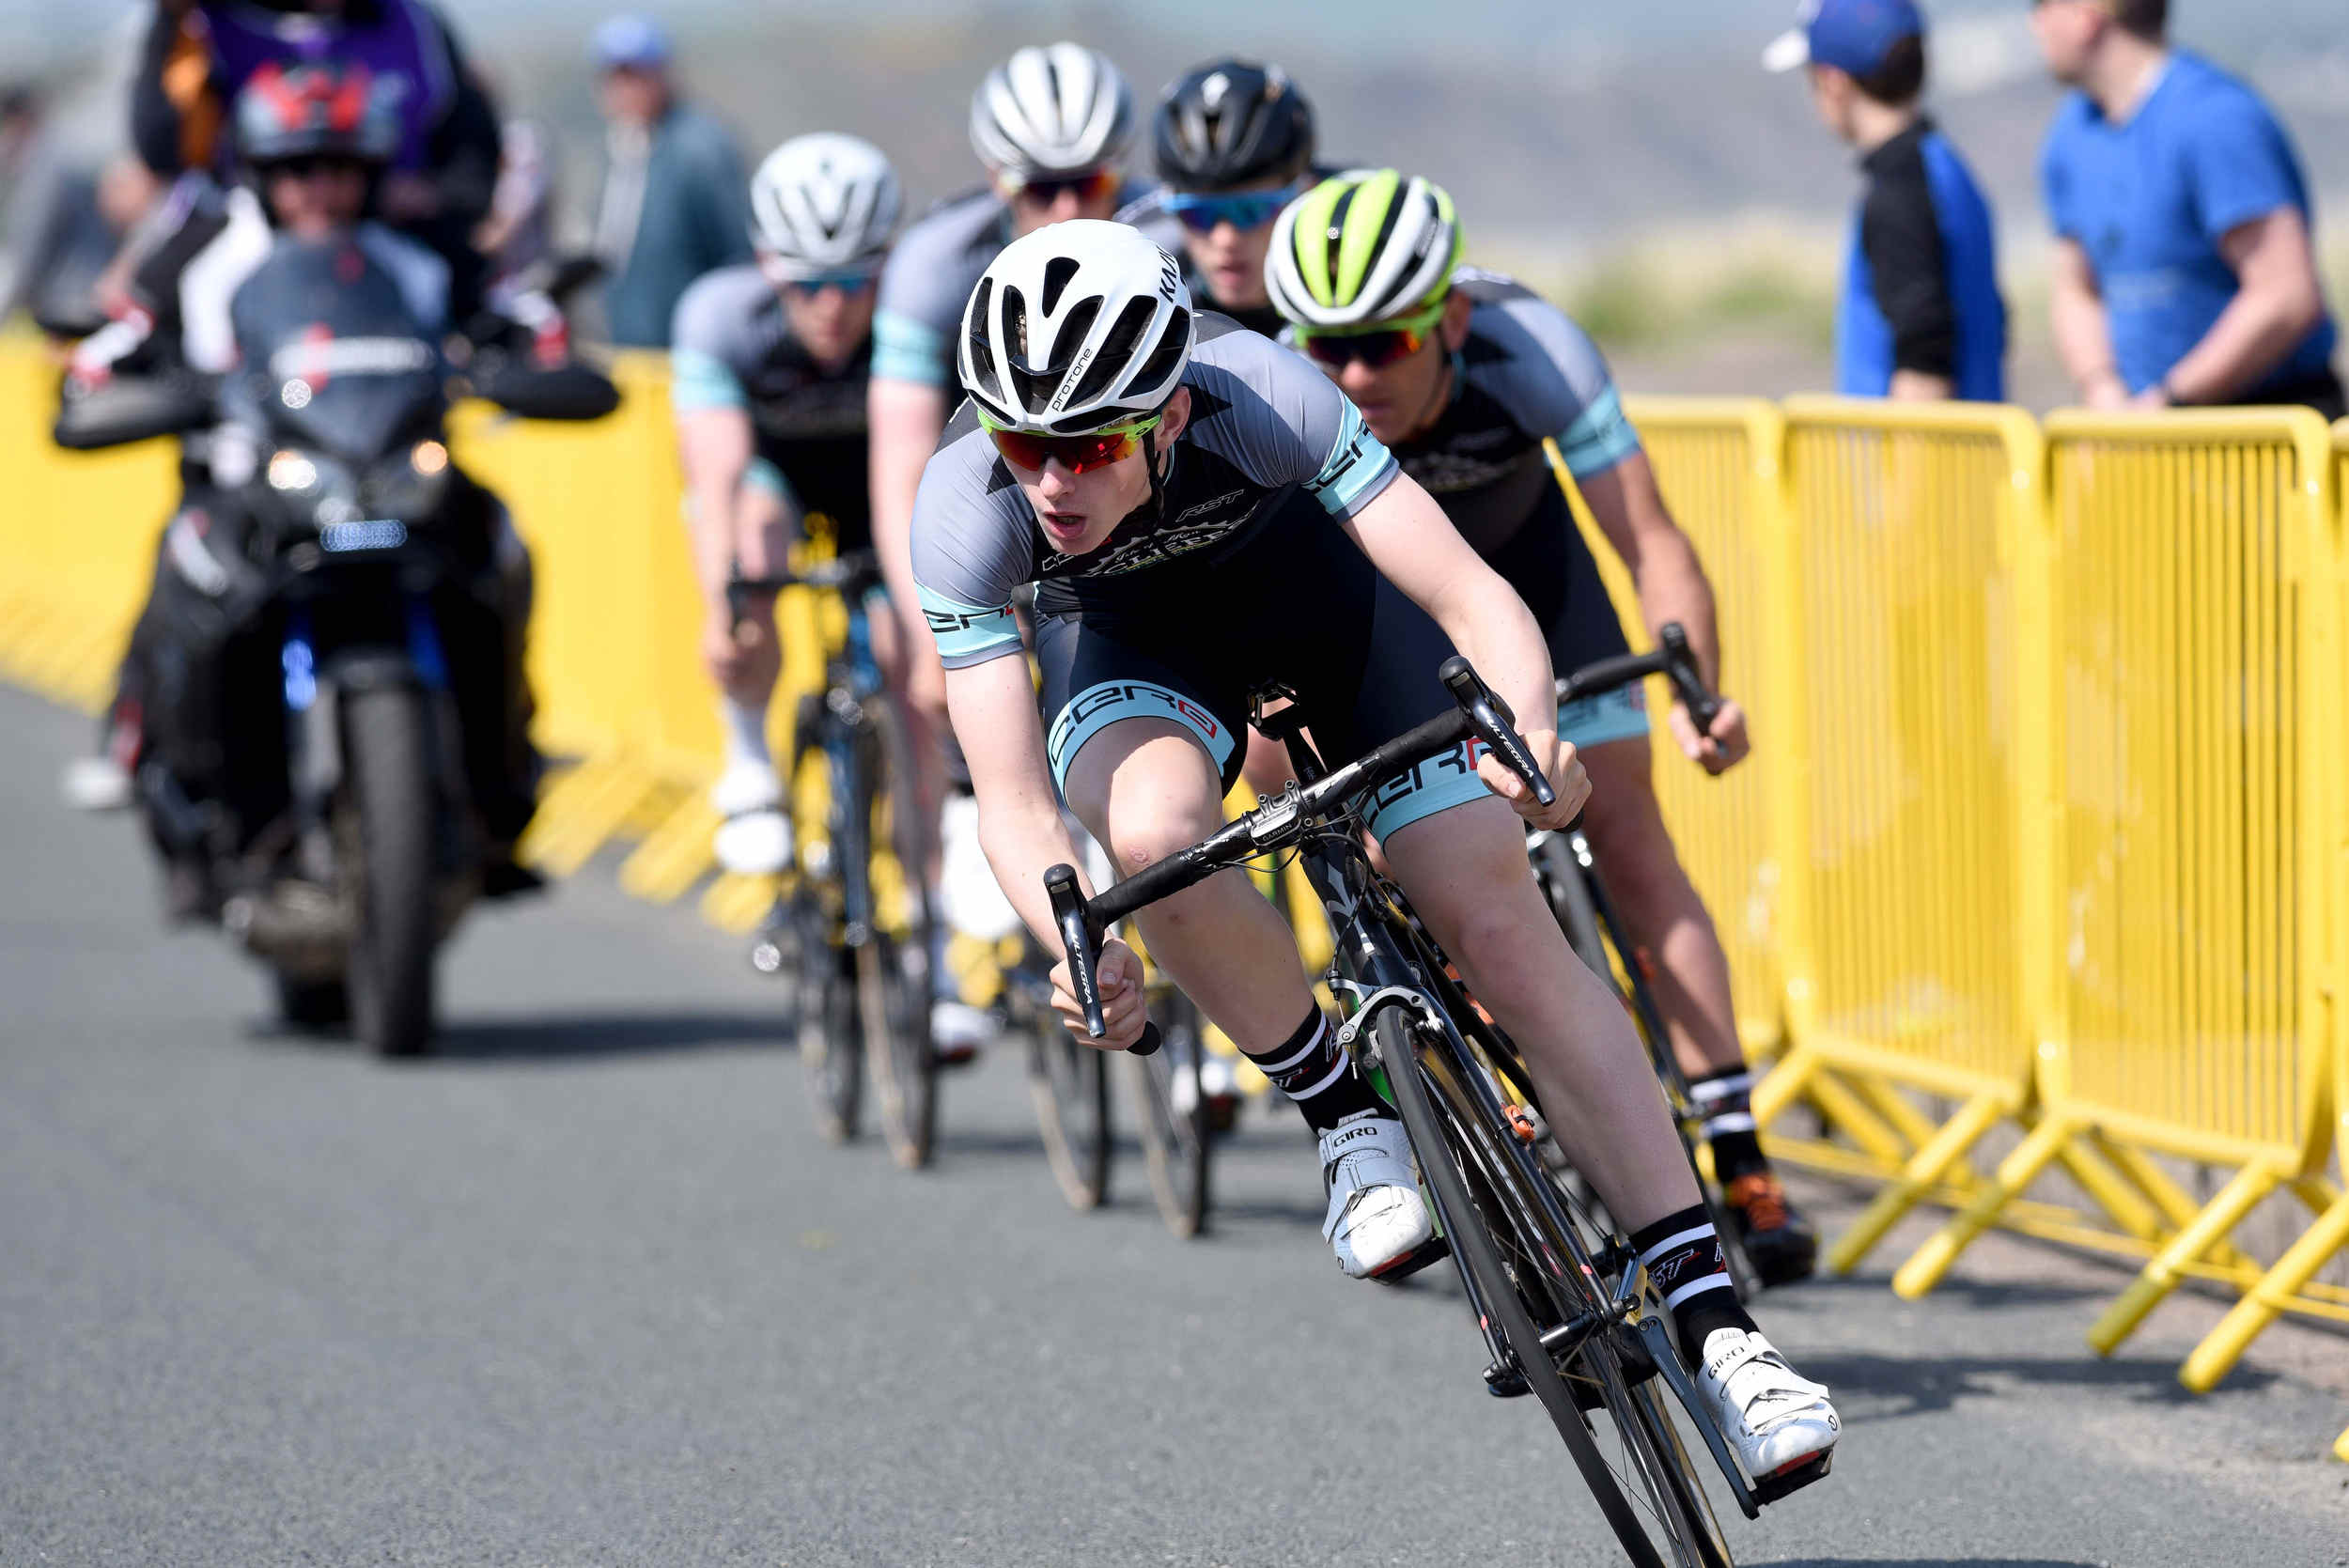 Day One of Isle of Man Cyclefest 2016 on Thursday, May 12. Based around Mooragh Promenade in Ramsey, the event included the first round of the Pearl Izumi Tour Series and a number of youth events and races.